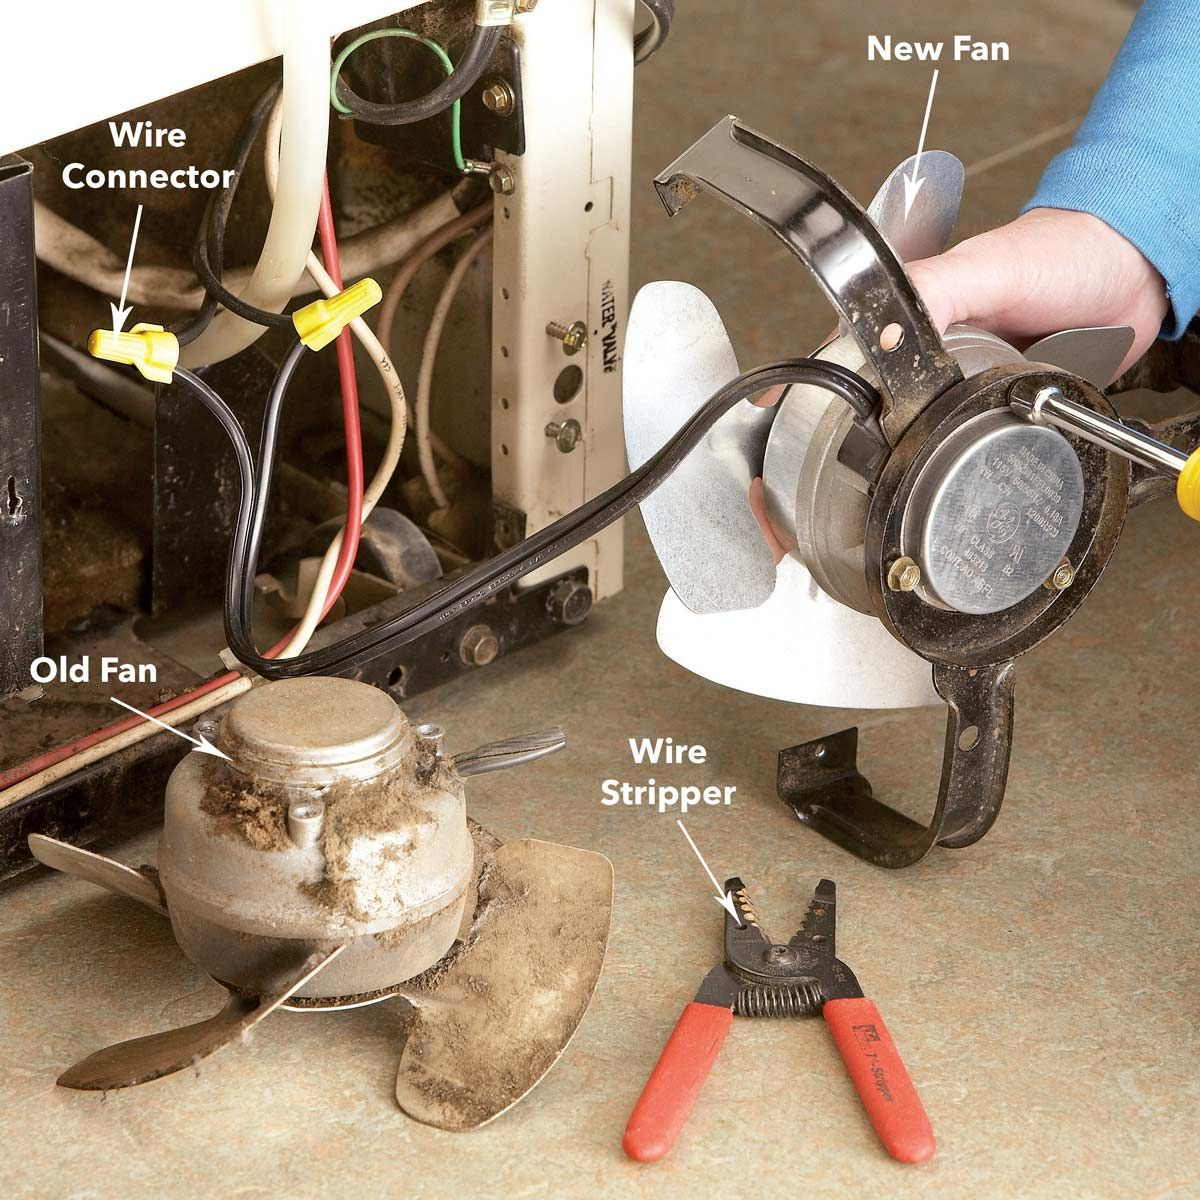 Refrigerator Not Cooling How To Fix Refrigerator Problems